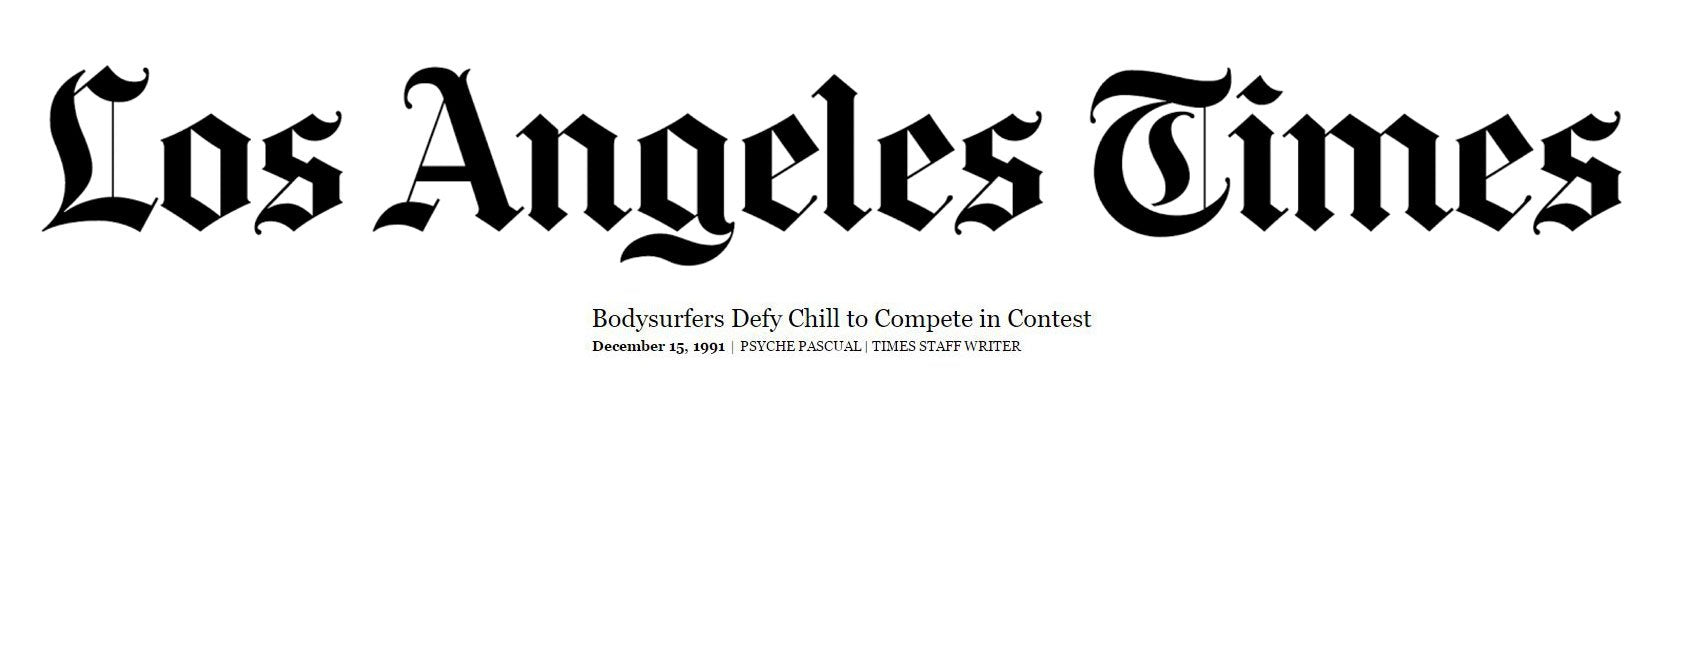 Bodysurfers Defy Chills - This Day in 1991, An Article by the Los Angeles Times